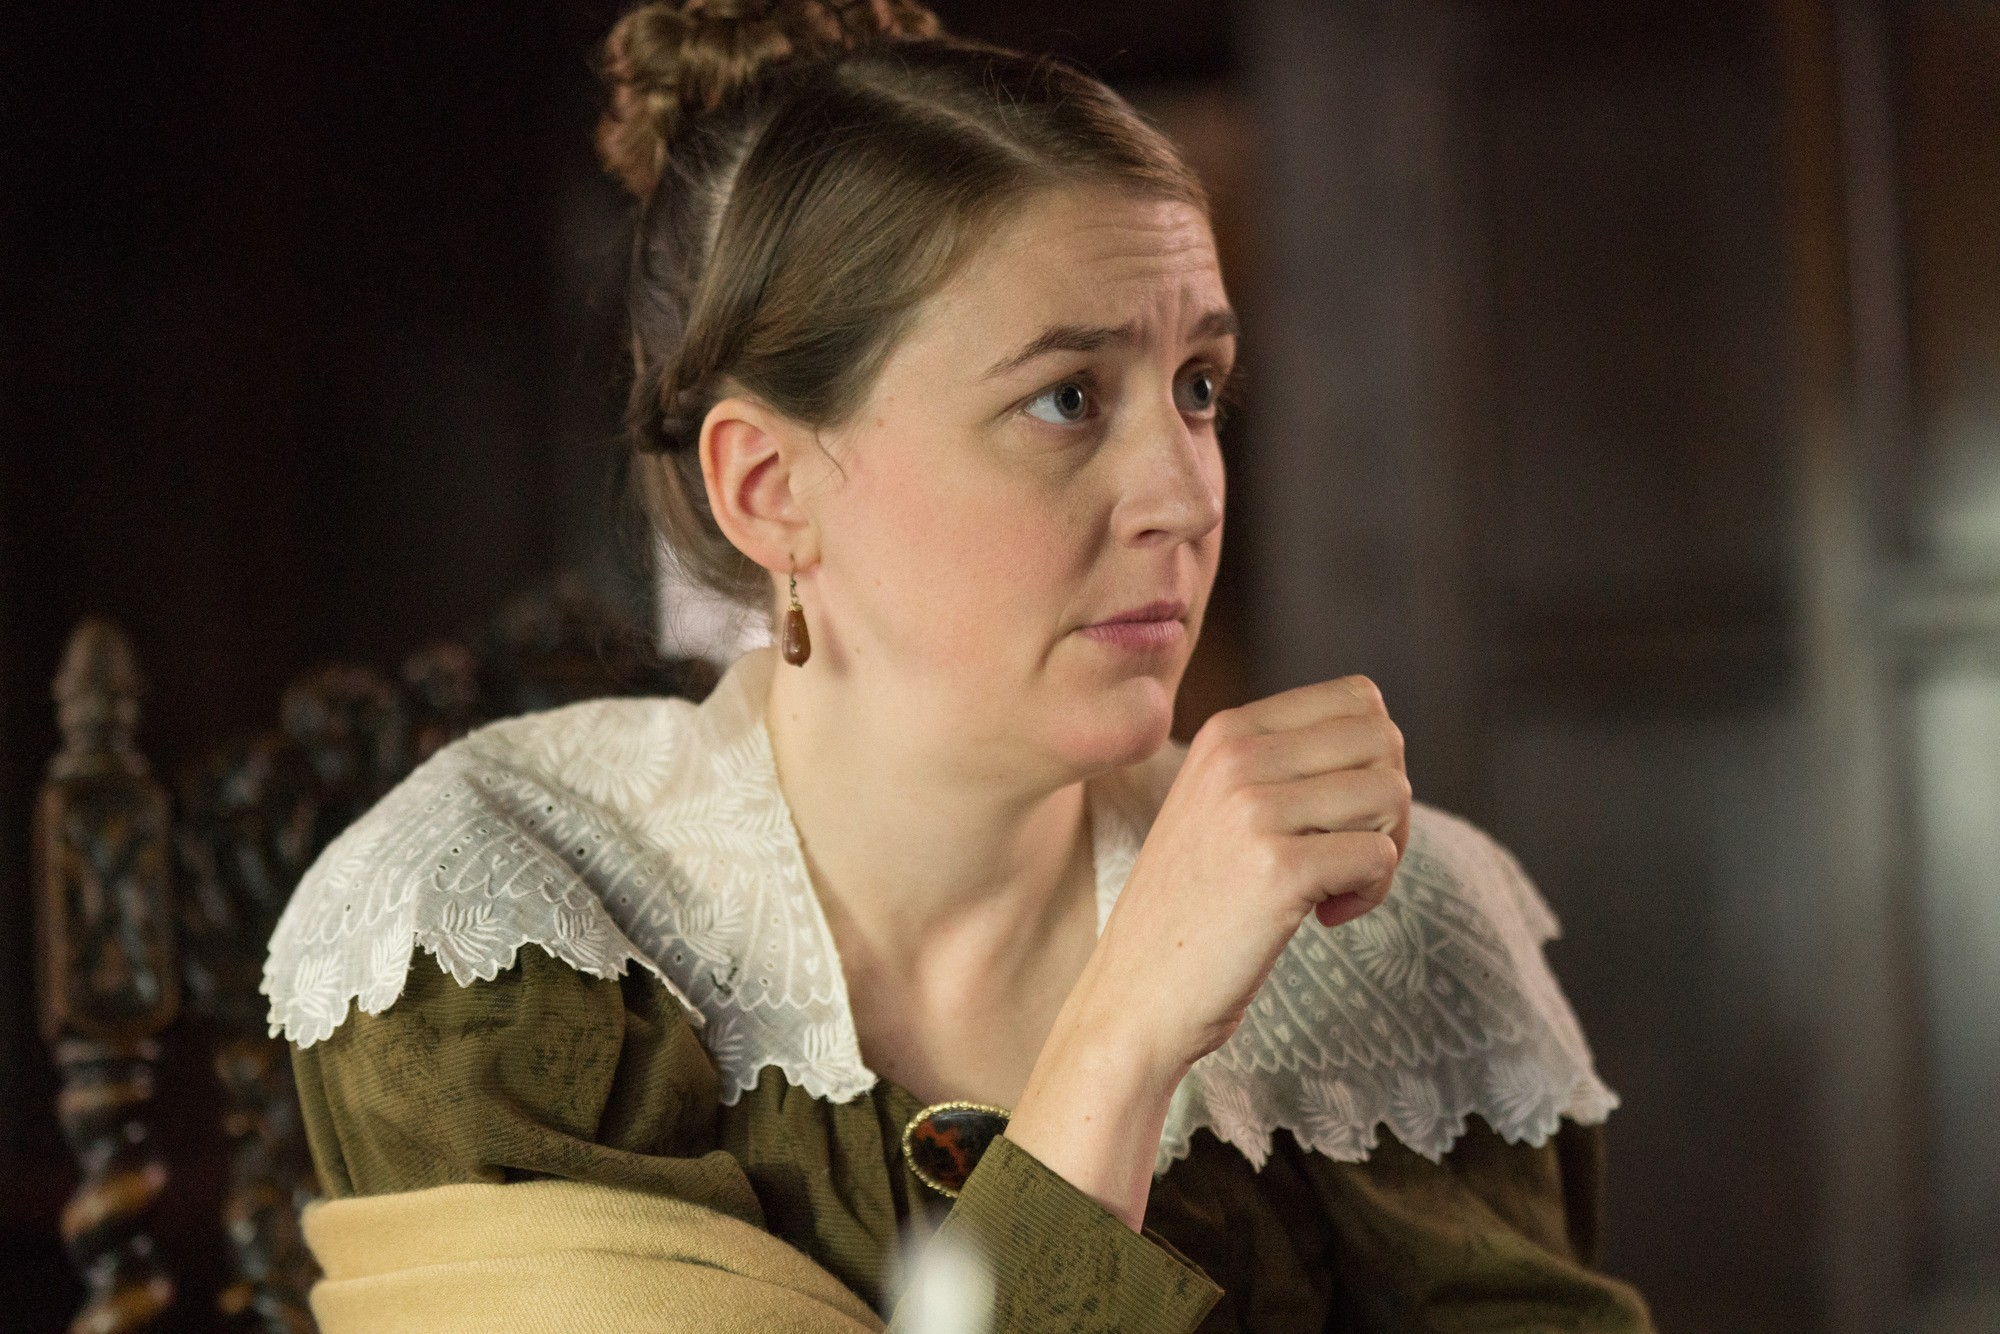 Gemma Whelan as Marian Lister in Gentleman Jack